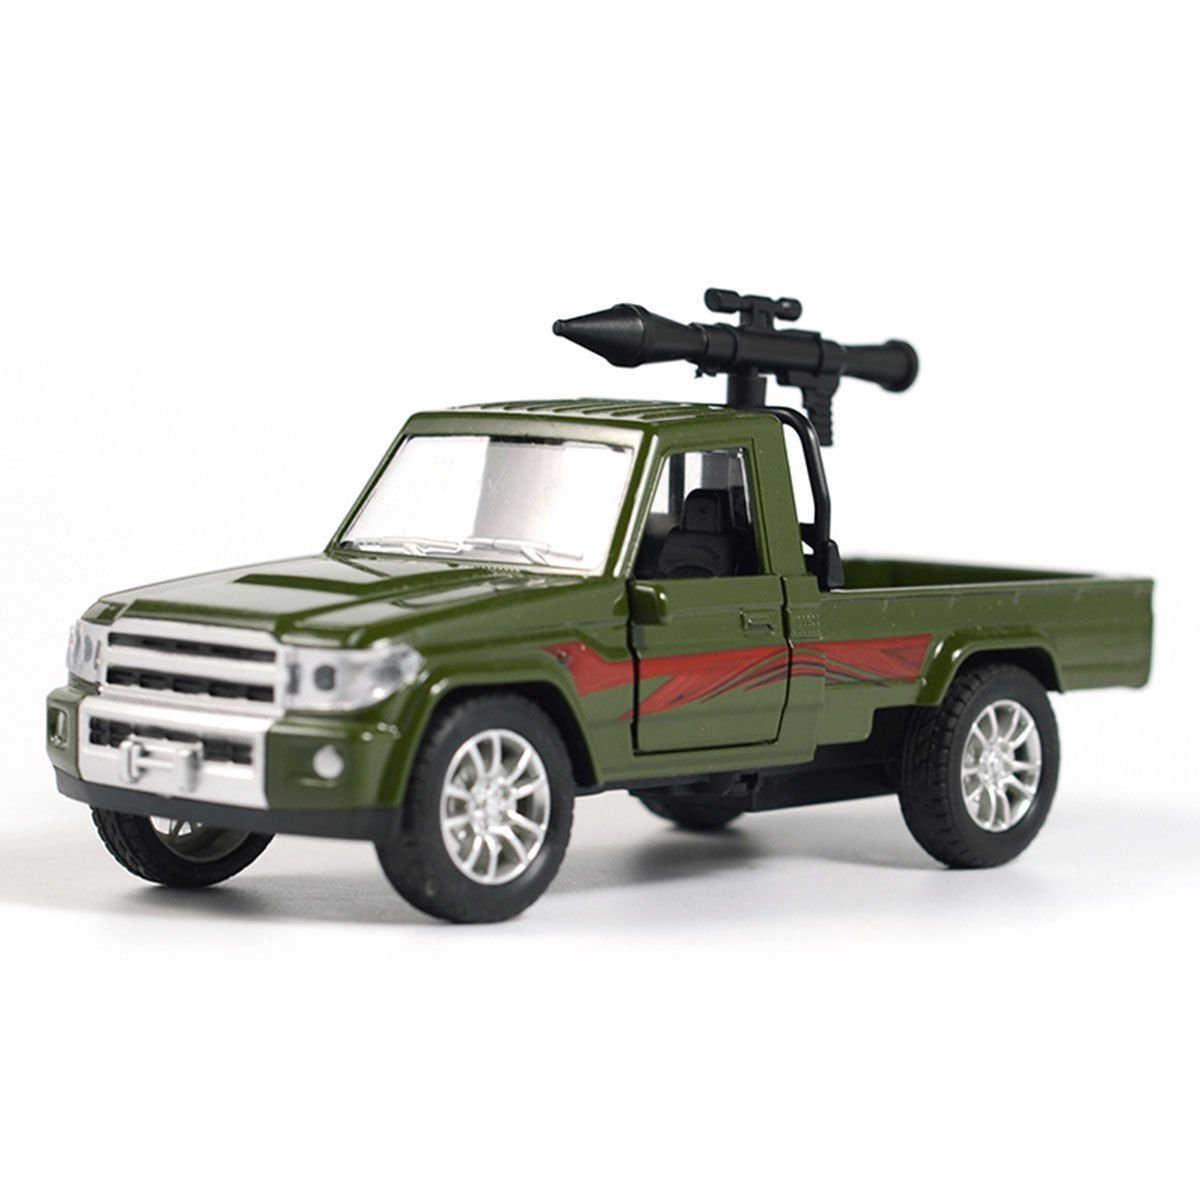 1:28 Military Pickup Truck w/ Antiaircraft Missile Car Model Diecast Toy Green